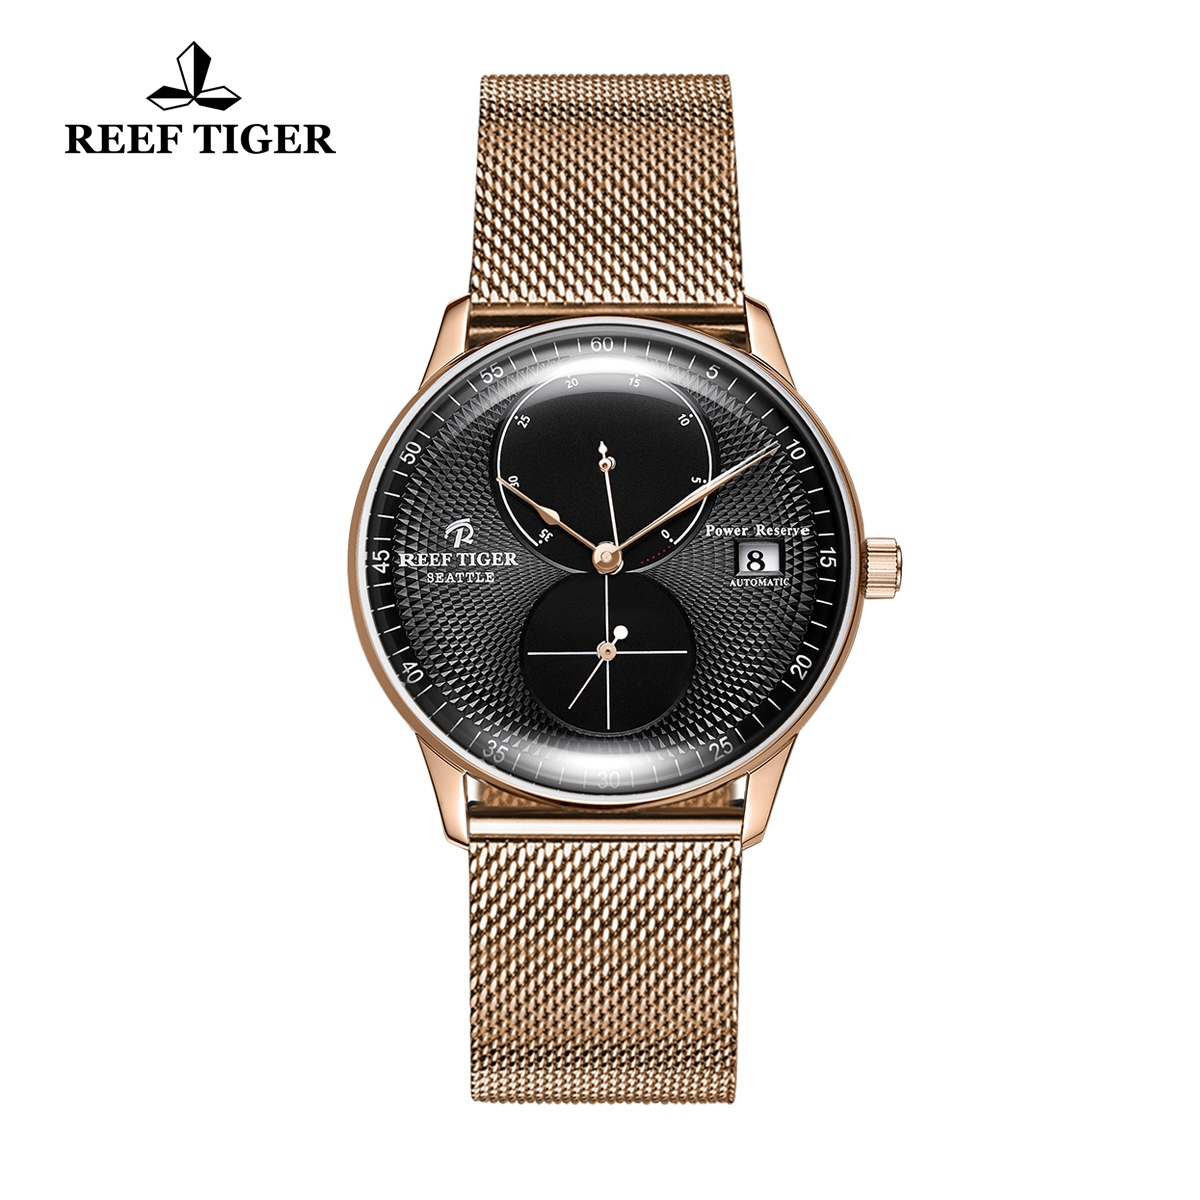 Reef Tiger Seattle Navy Fashion Rose Gold Black Dial Rose Gold Bracelet Automatic Watch RGA82B0-PBP